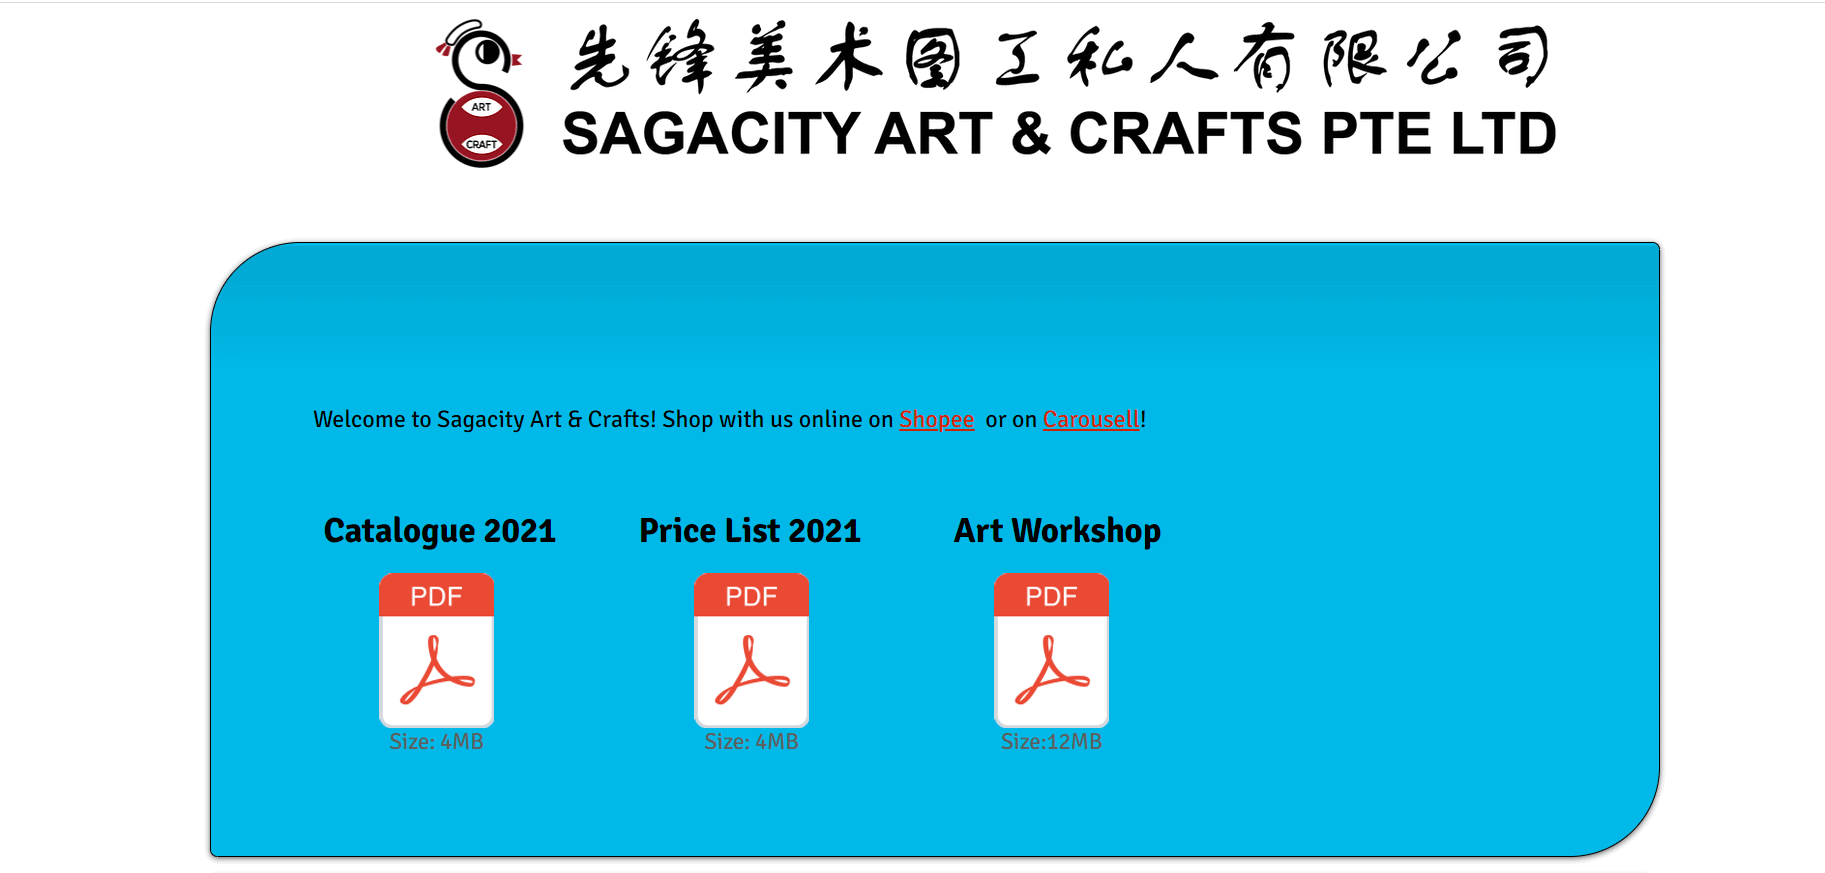 Sagacity Art and Crafts Pte Ltd is the top Craft stores in Singapore for art supplies for your next DIY project